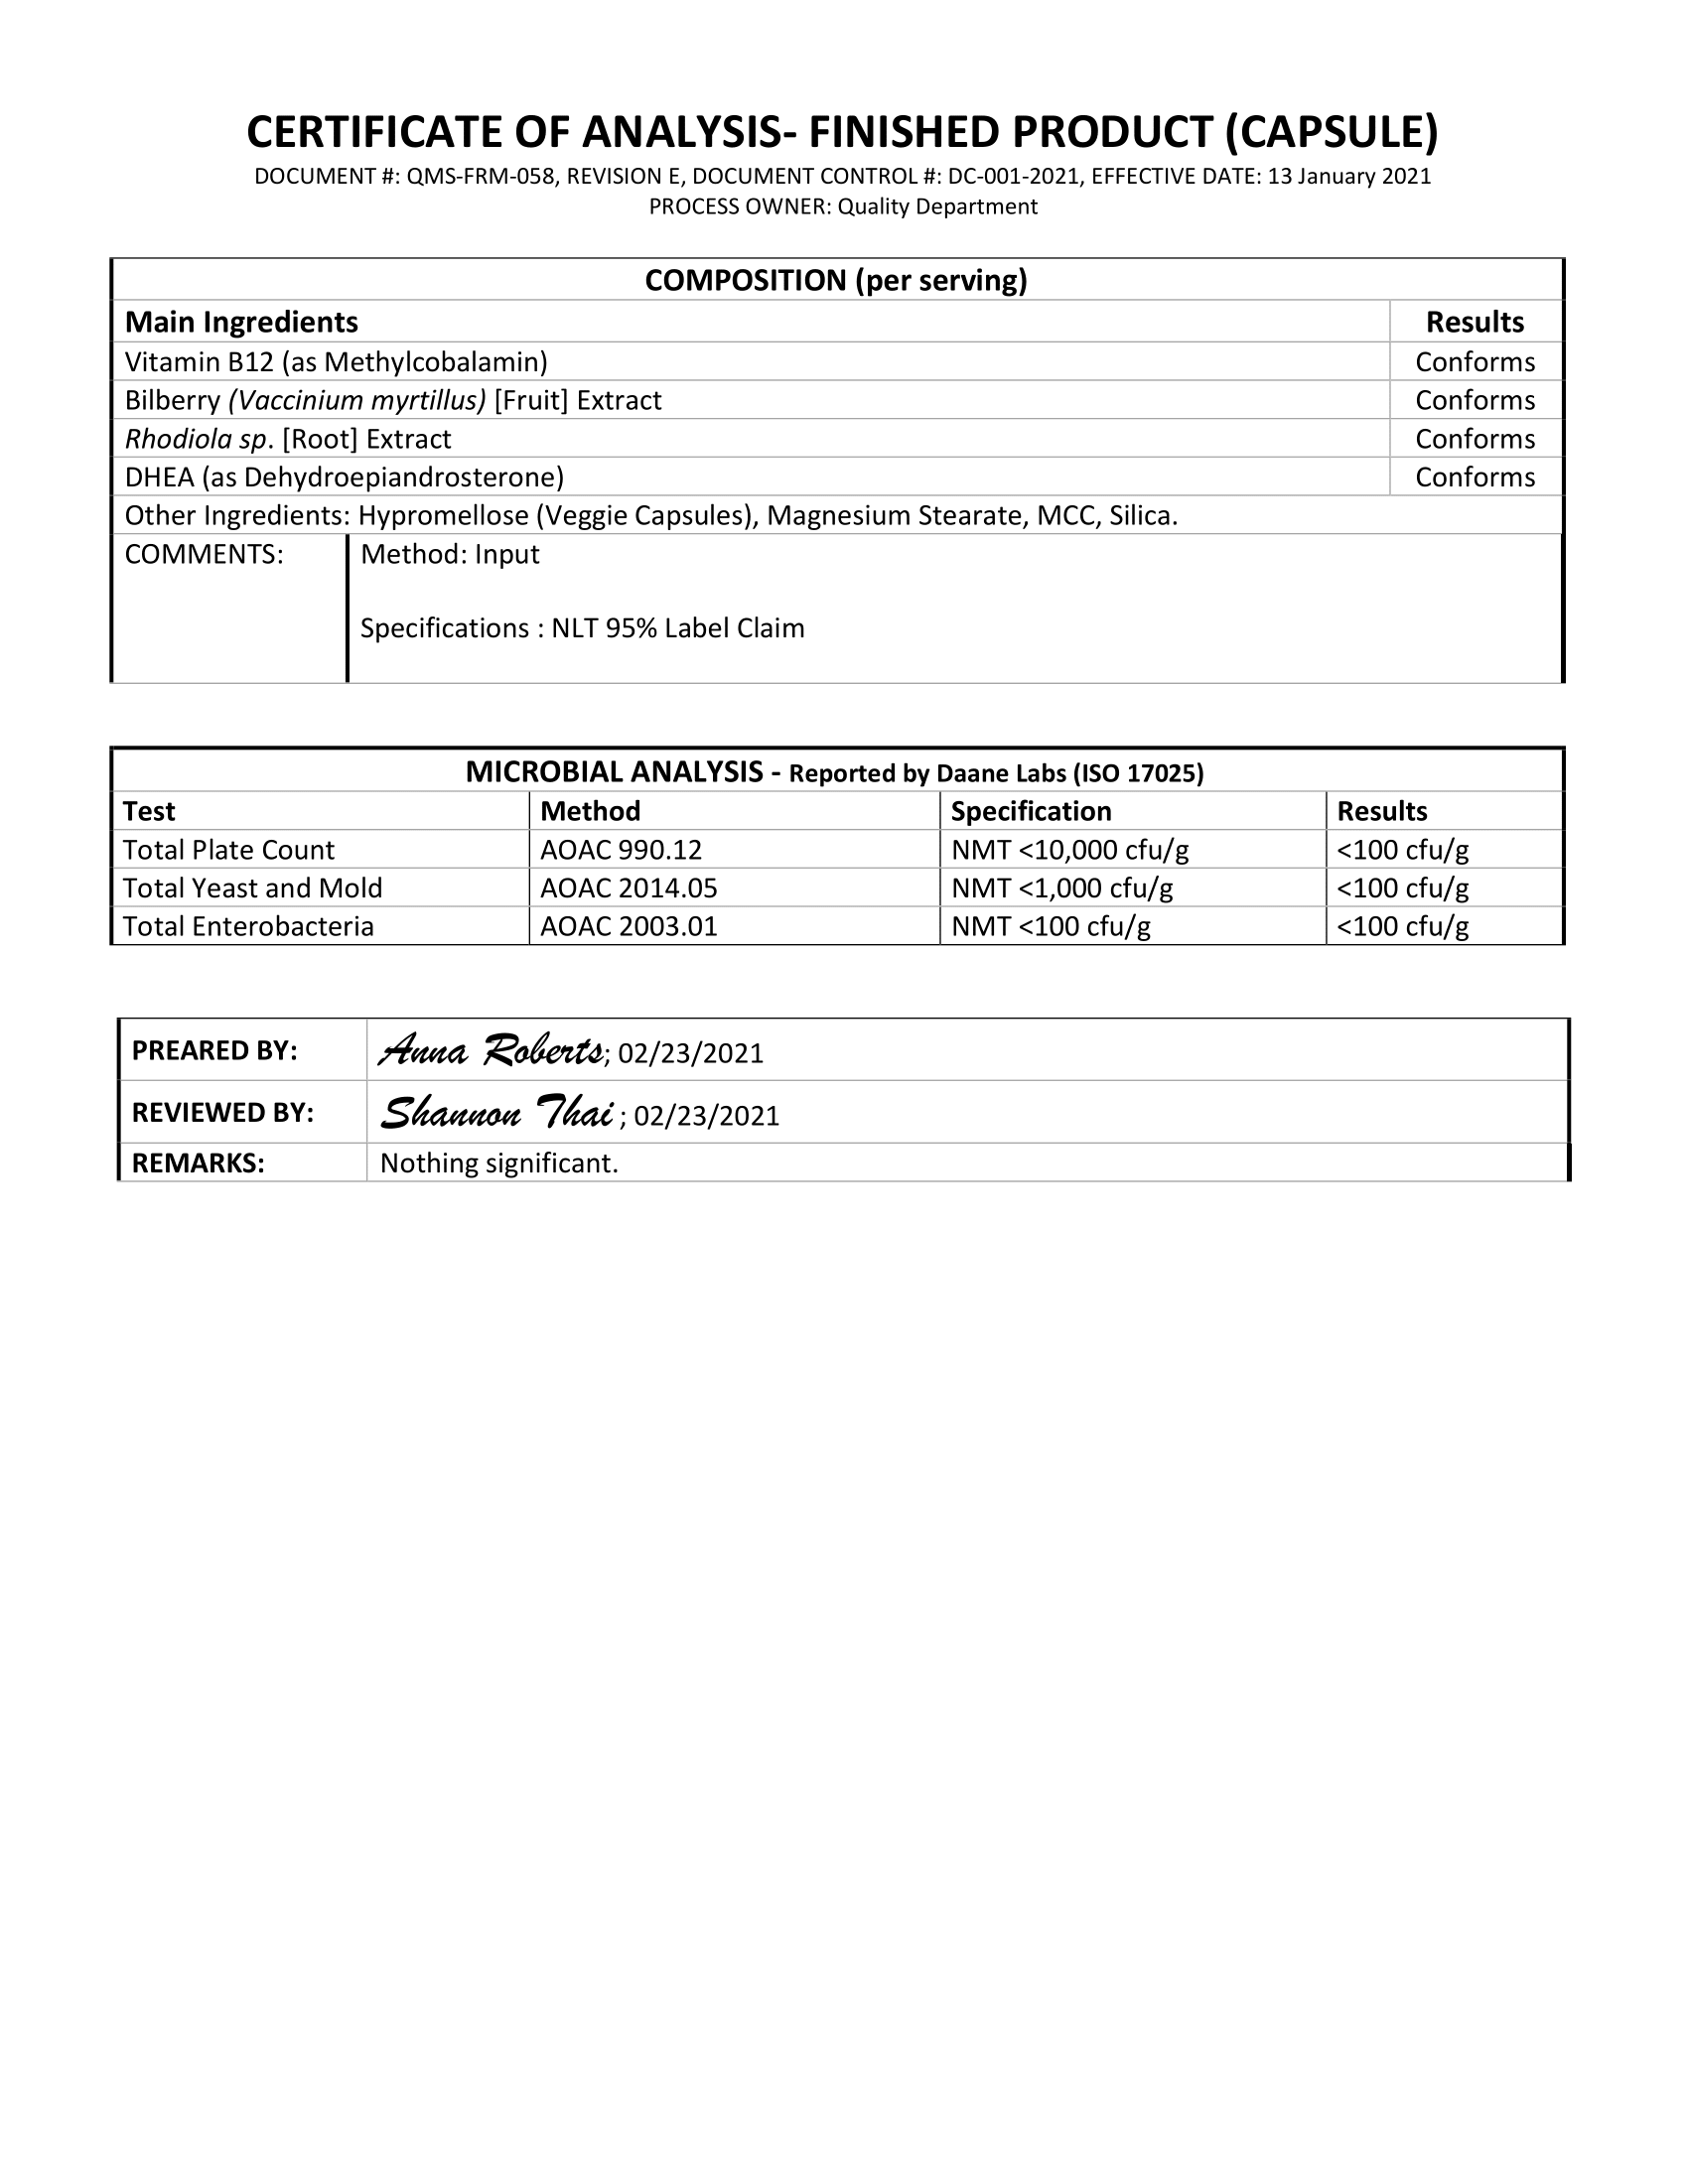 Vitality Lab Test Certificate Page 2